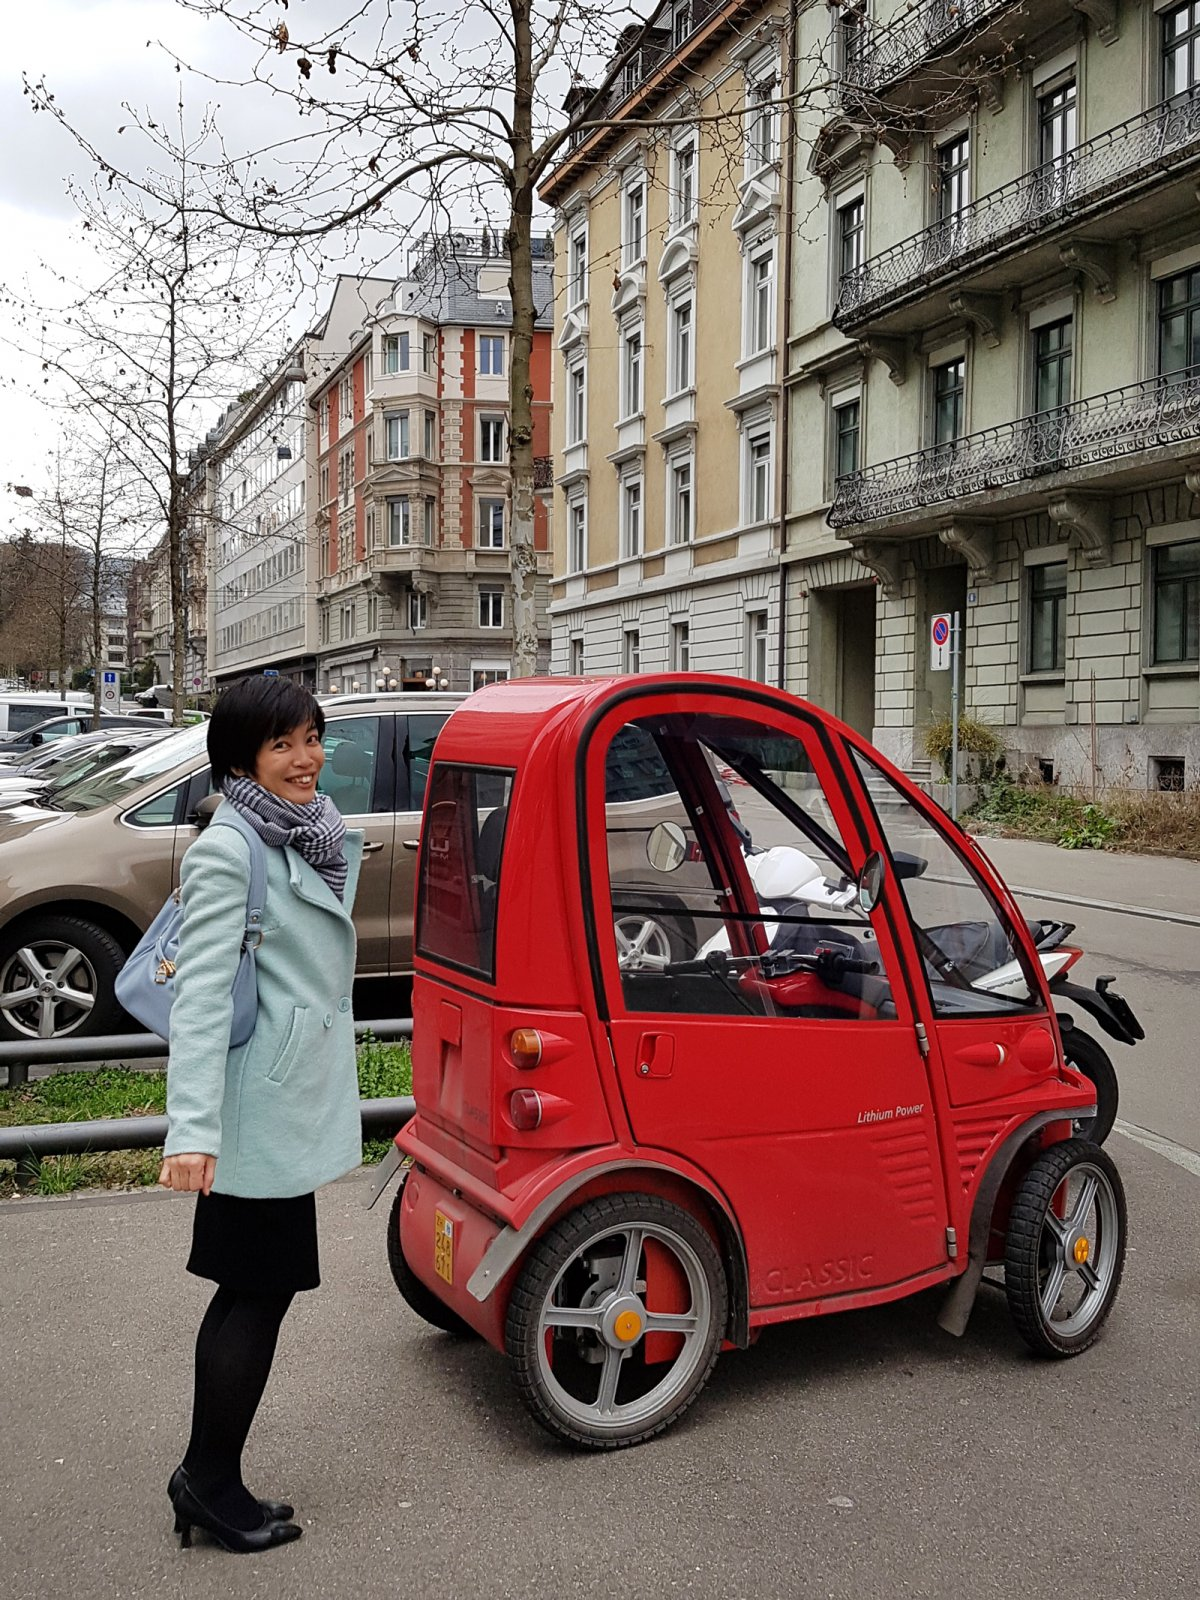 A tiny car parked in Switzerland